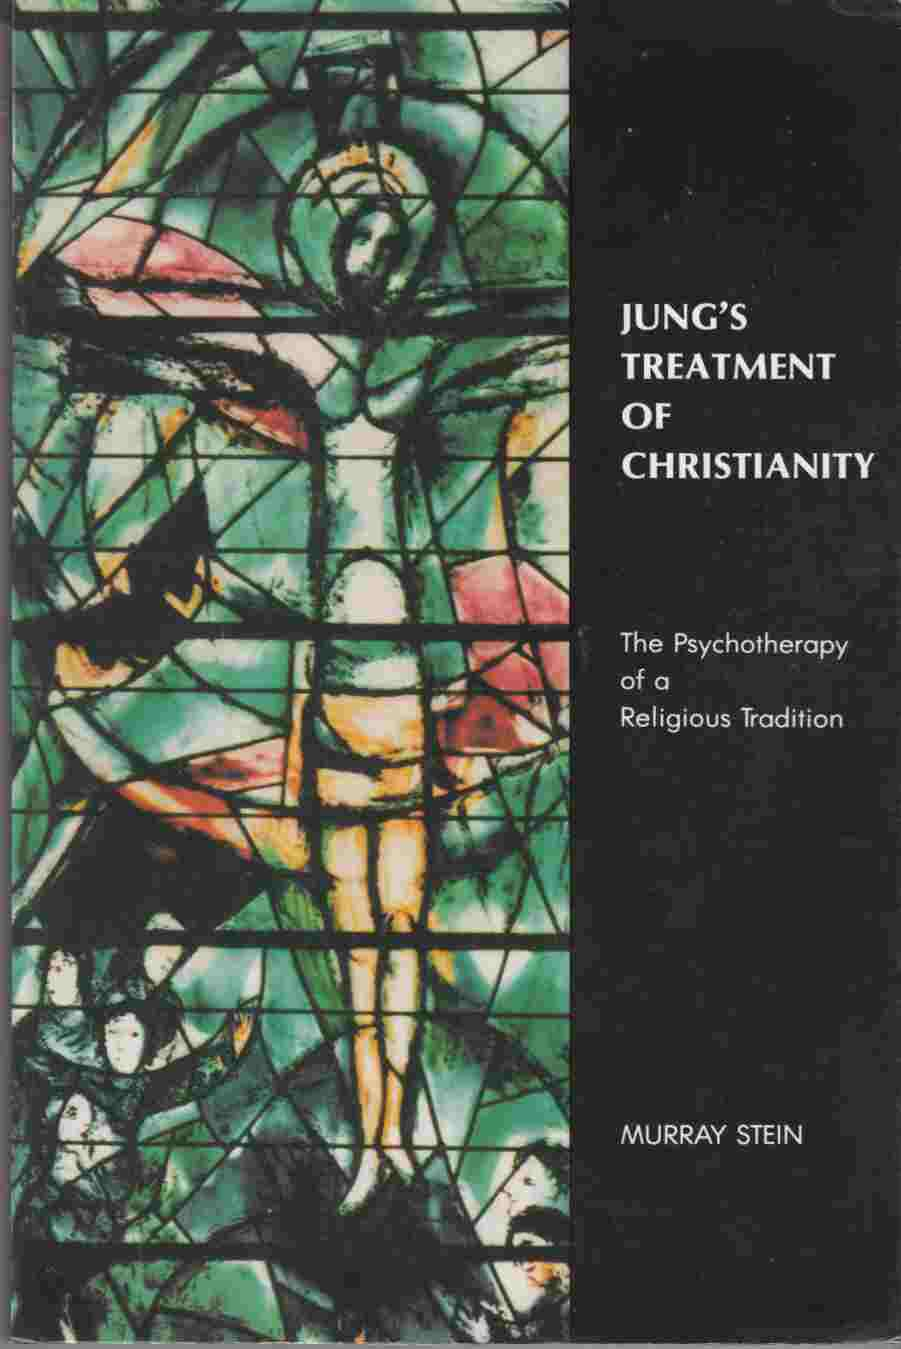 Image for Jung's Treatment of Christianity The Psychotherapy of a Religious Tradition